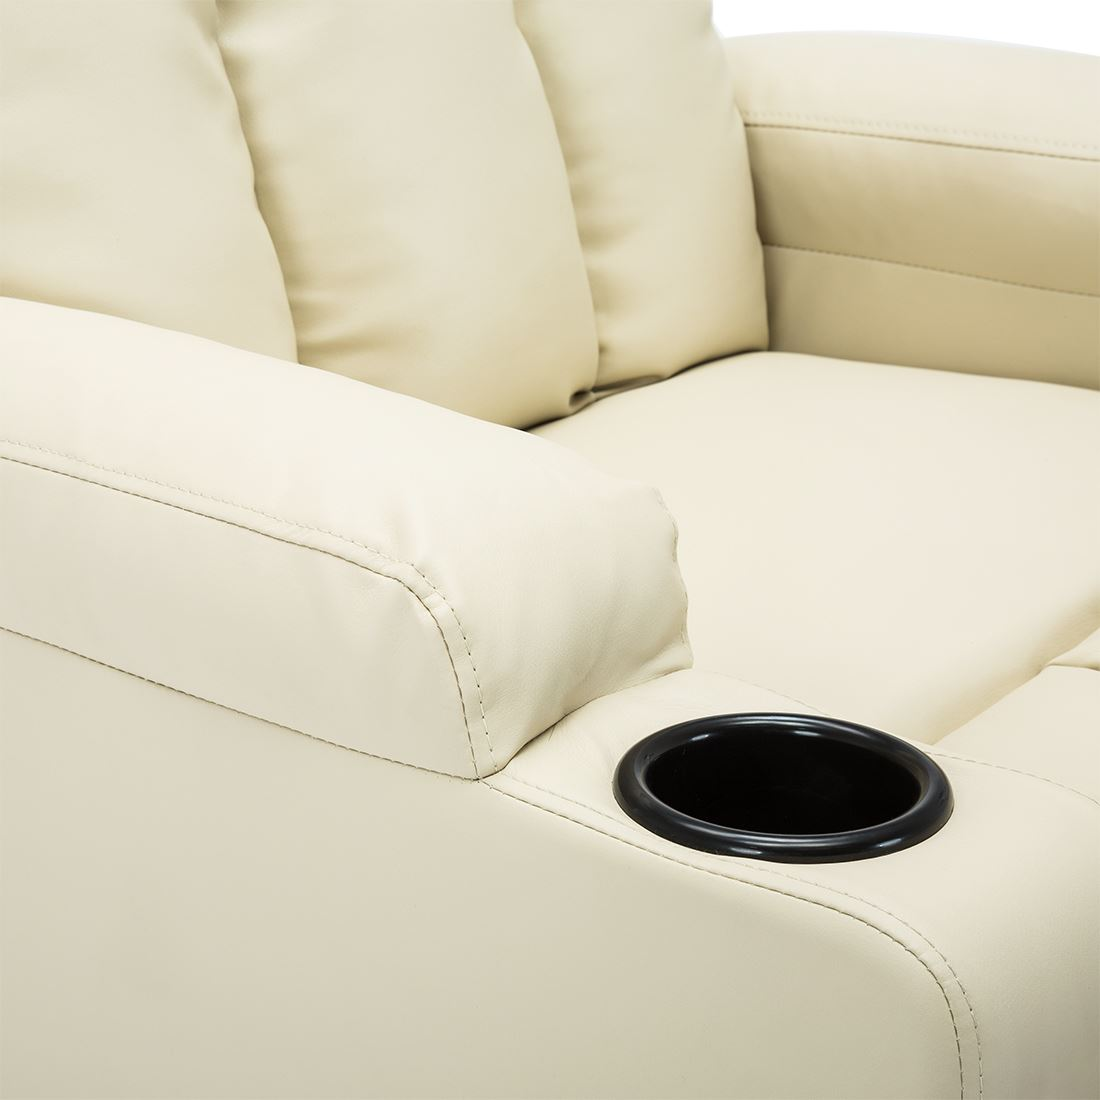 STUDIO-LEATHER-RECLINER-w-DRINK-HOLDERS-ARMCHAIR-SOFA-CHAIR-CINEMA-GAMING thumbnail 26